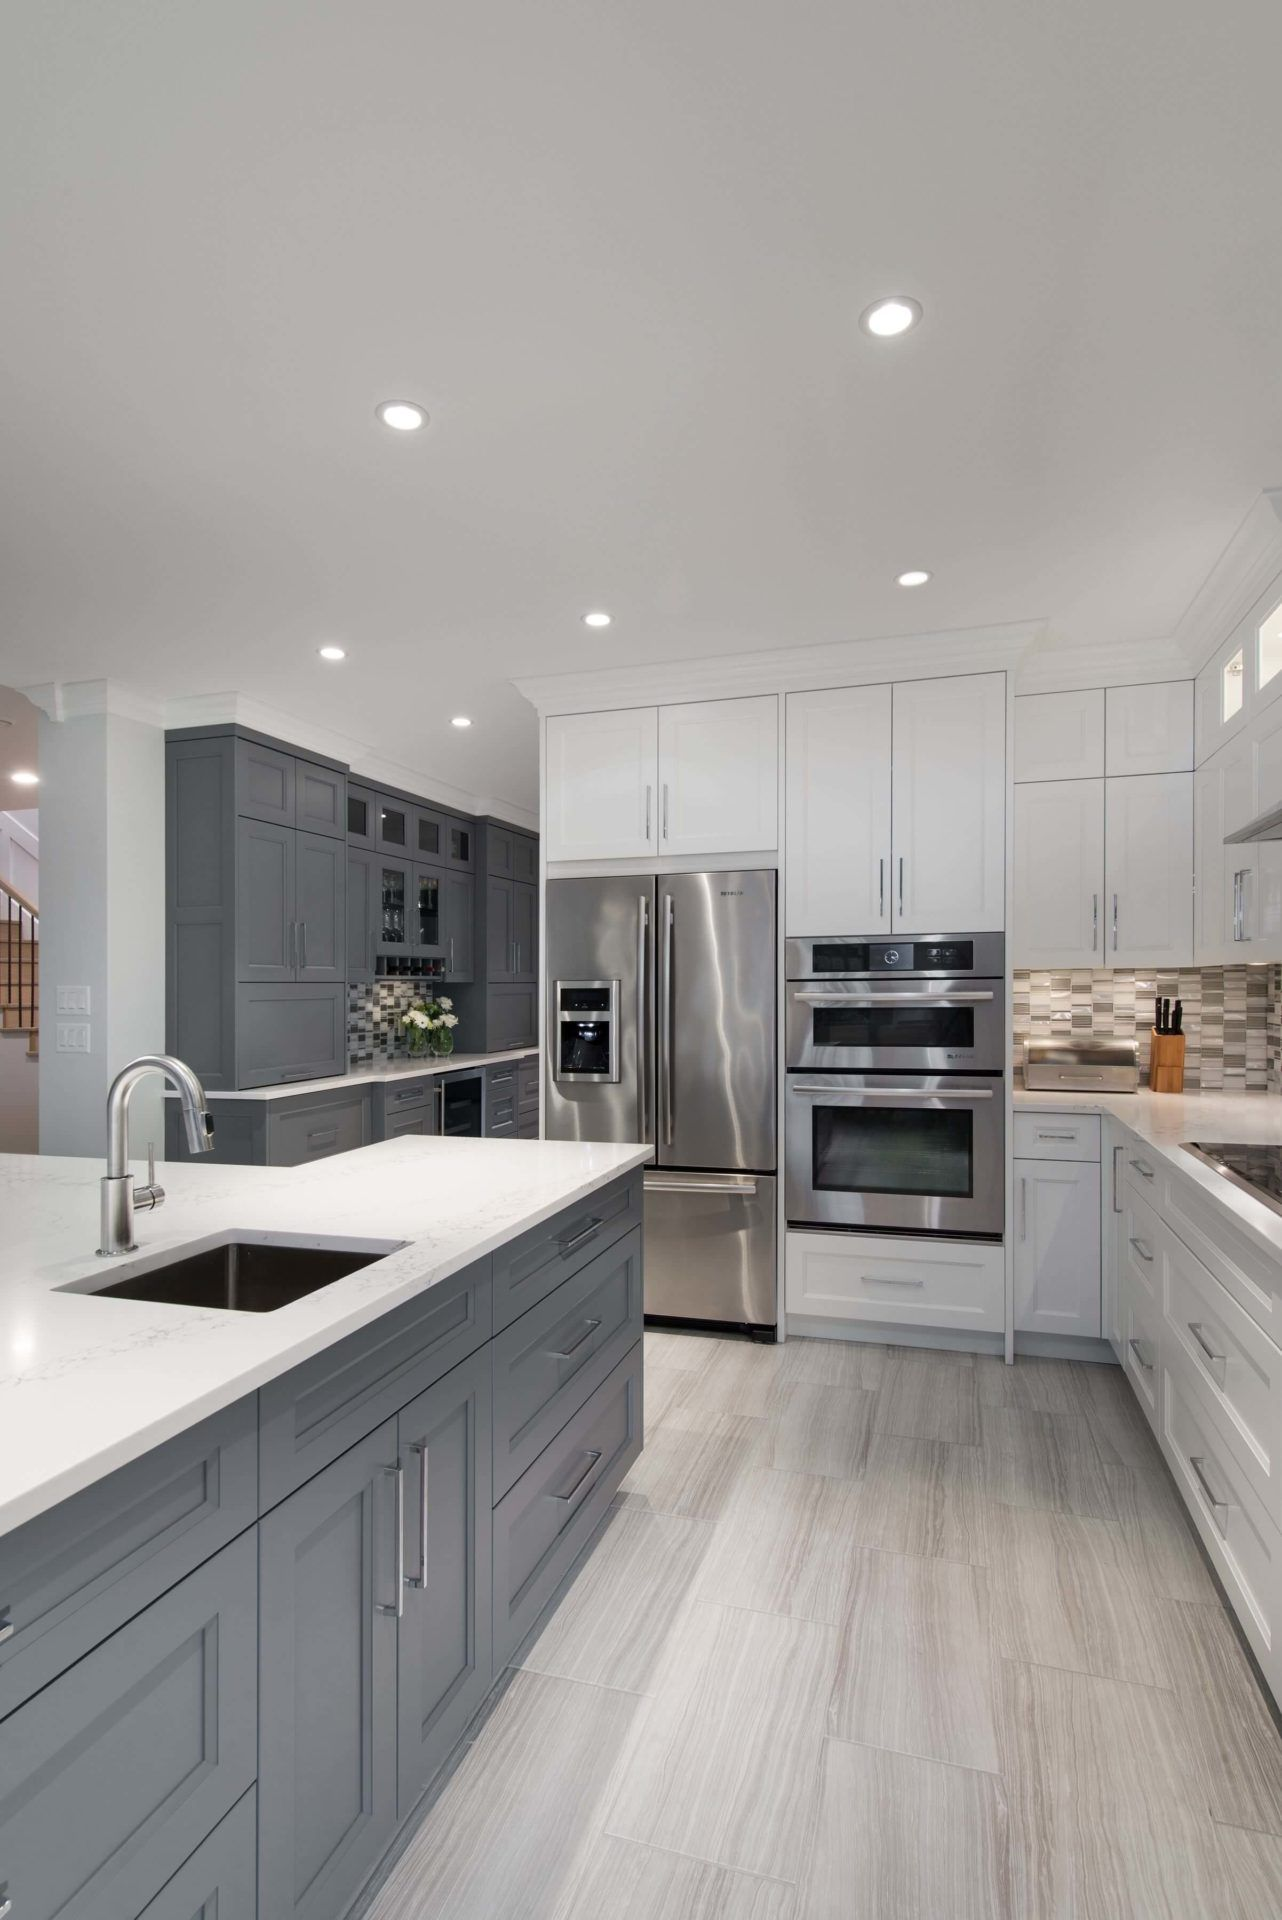 7 Creative Gray Kitchen Ideas that You Can Use Right Away! - EnthusiastHome